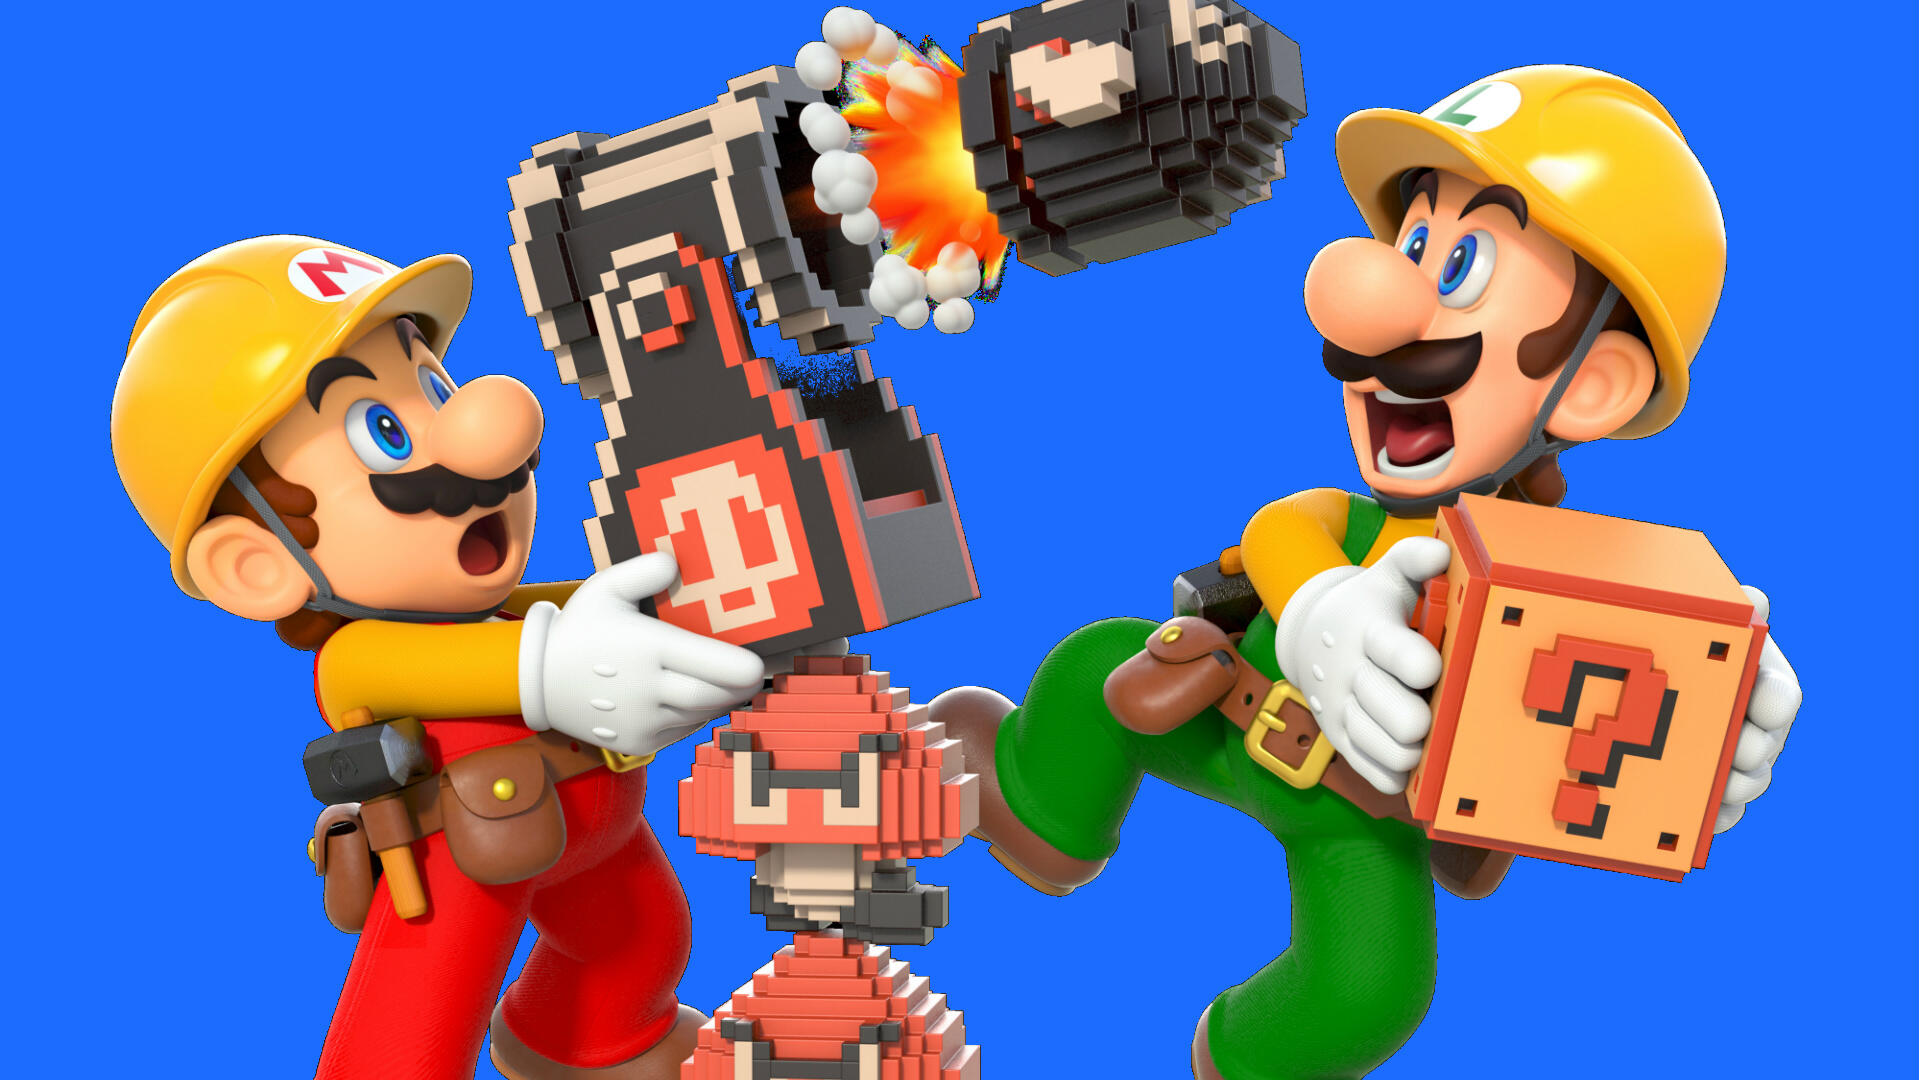 US Super Mario Maker 2 Players May Not Get a Stylus, But There is This Sweet Lunchbox